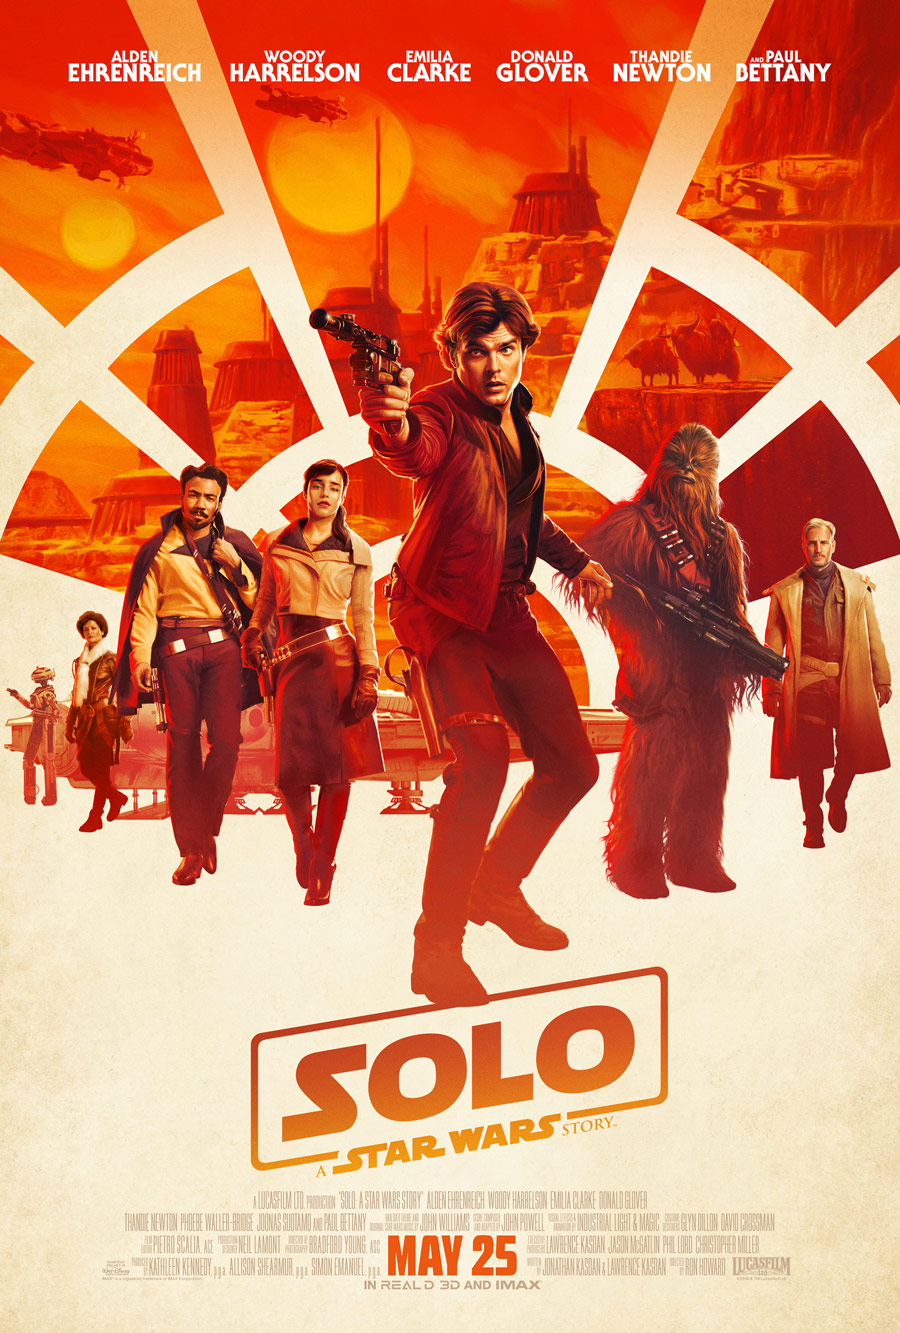 31 Years Later We See How It Started In Solo: A Star Wars Story